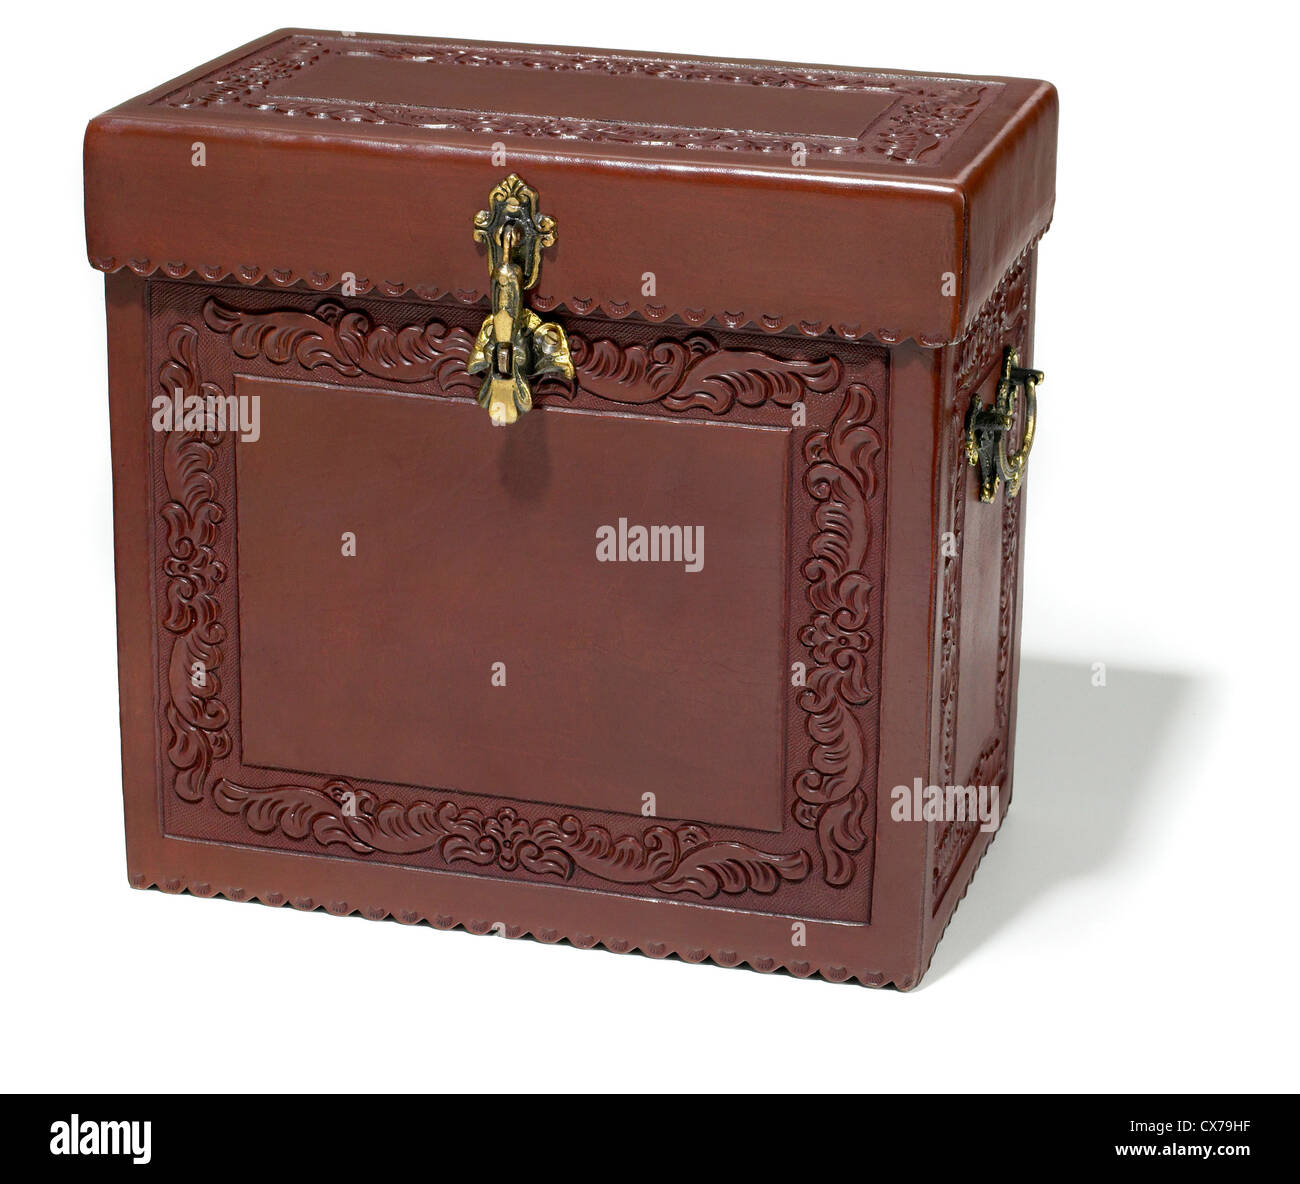 embossed leather bottle box photographed on a white background - Stock Image